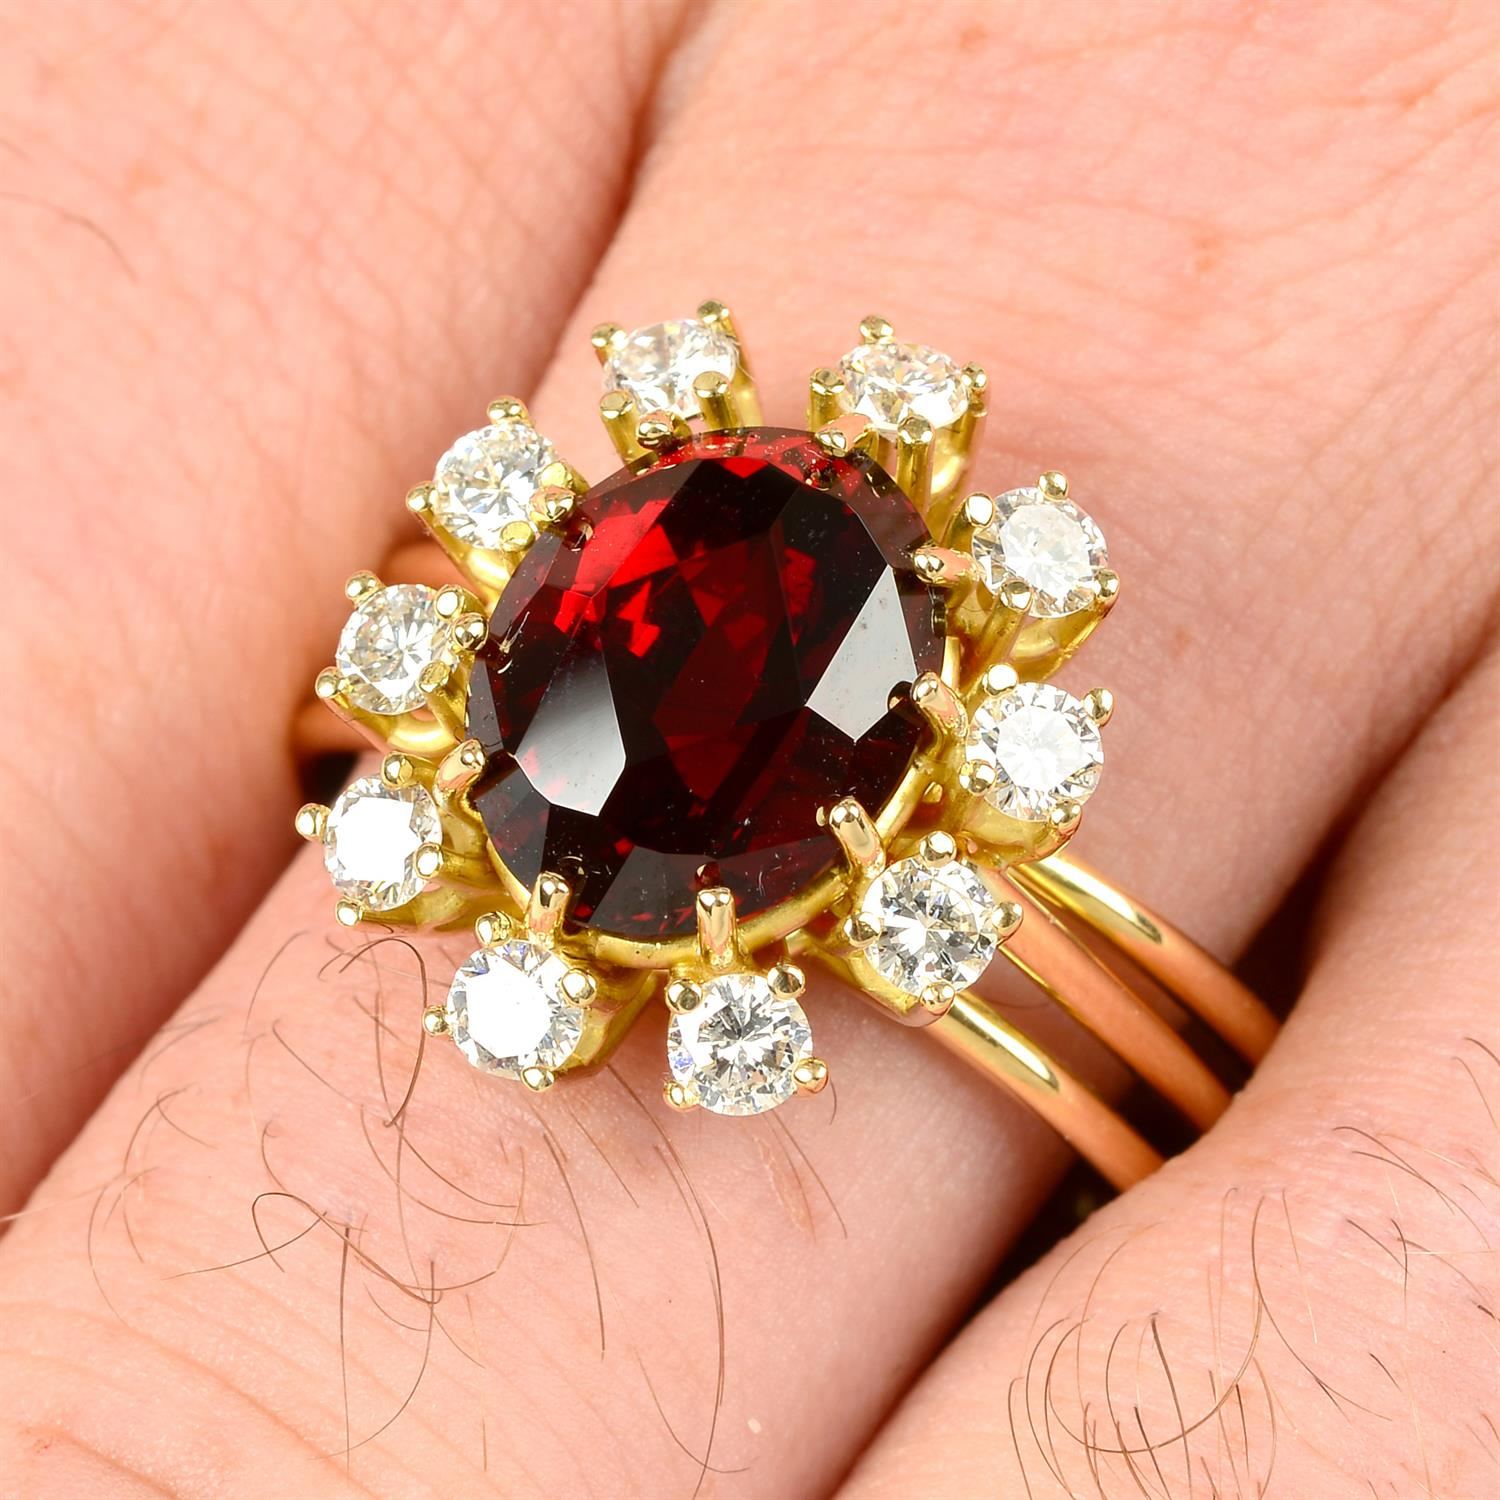 A garnet and brilliant-cut diamond cluster ring, attributed to Erwin Springbrunn.